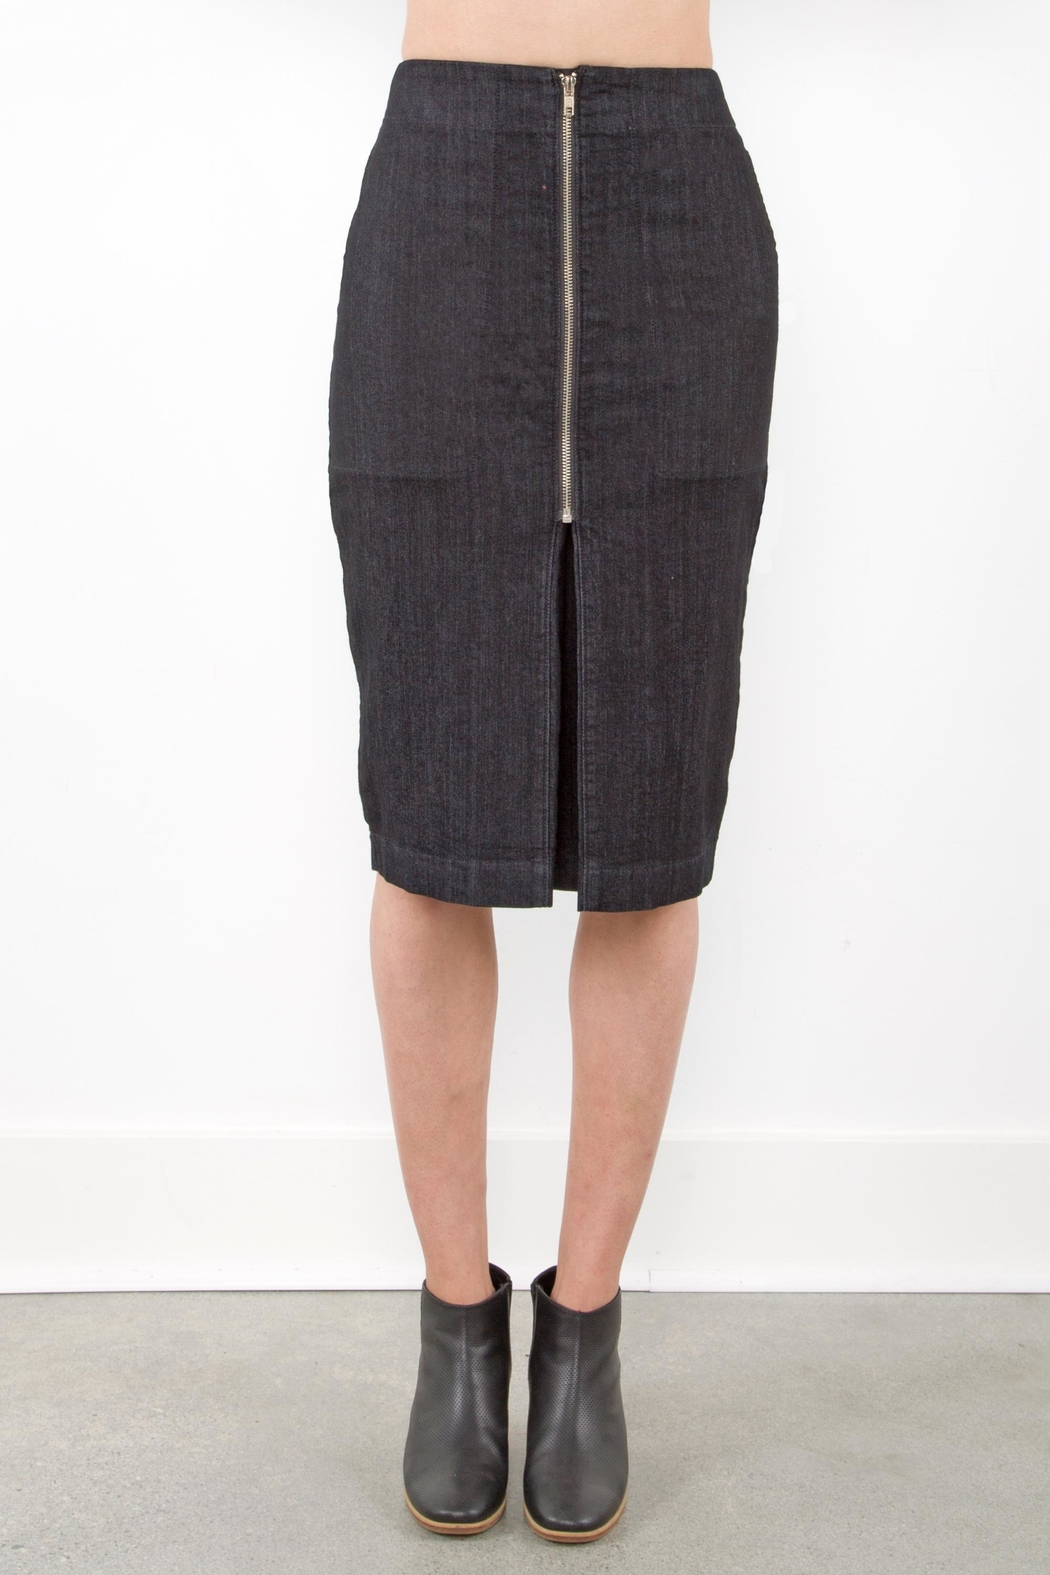 Prairie Underground Zip Pleat Skirt - Side Cropped Image